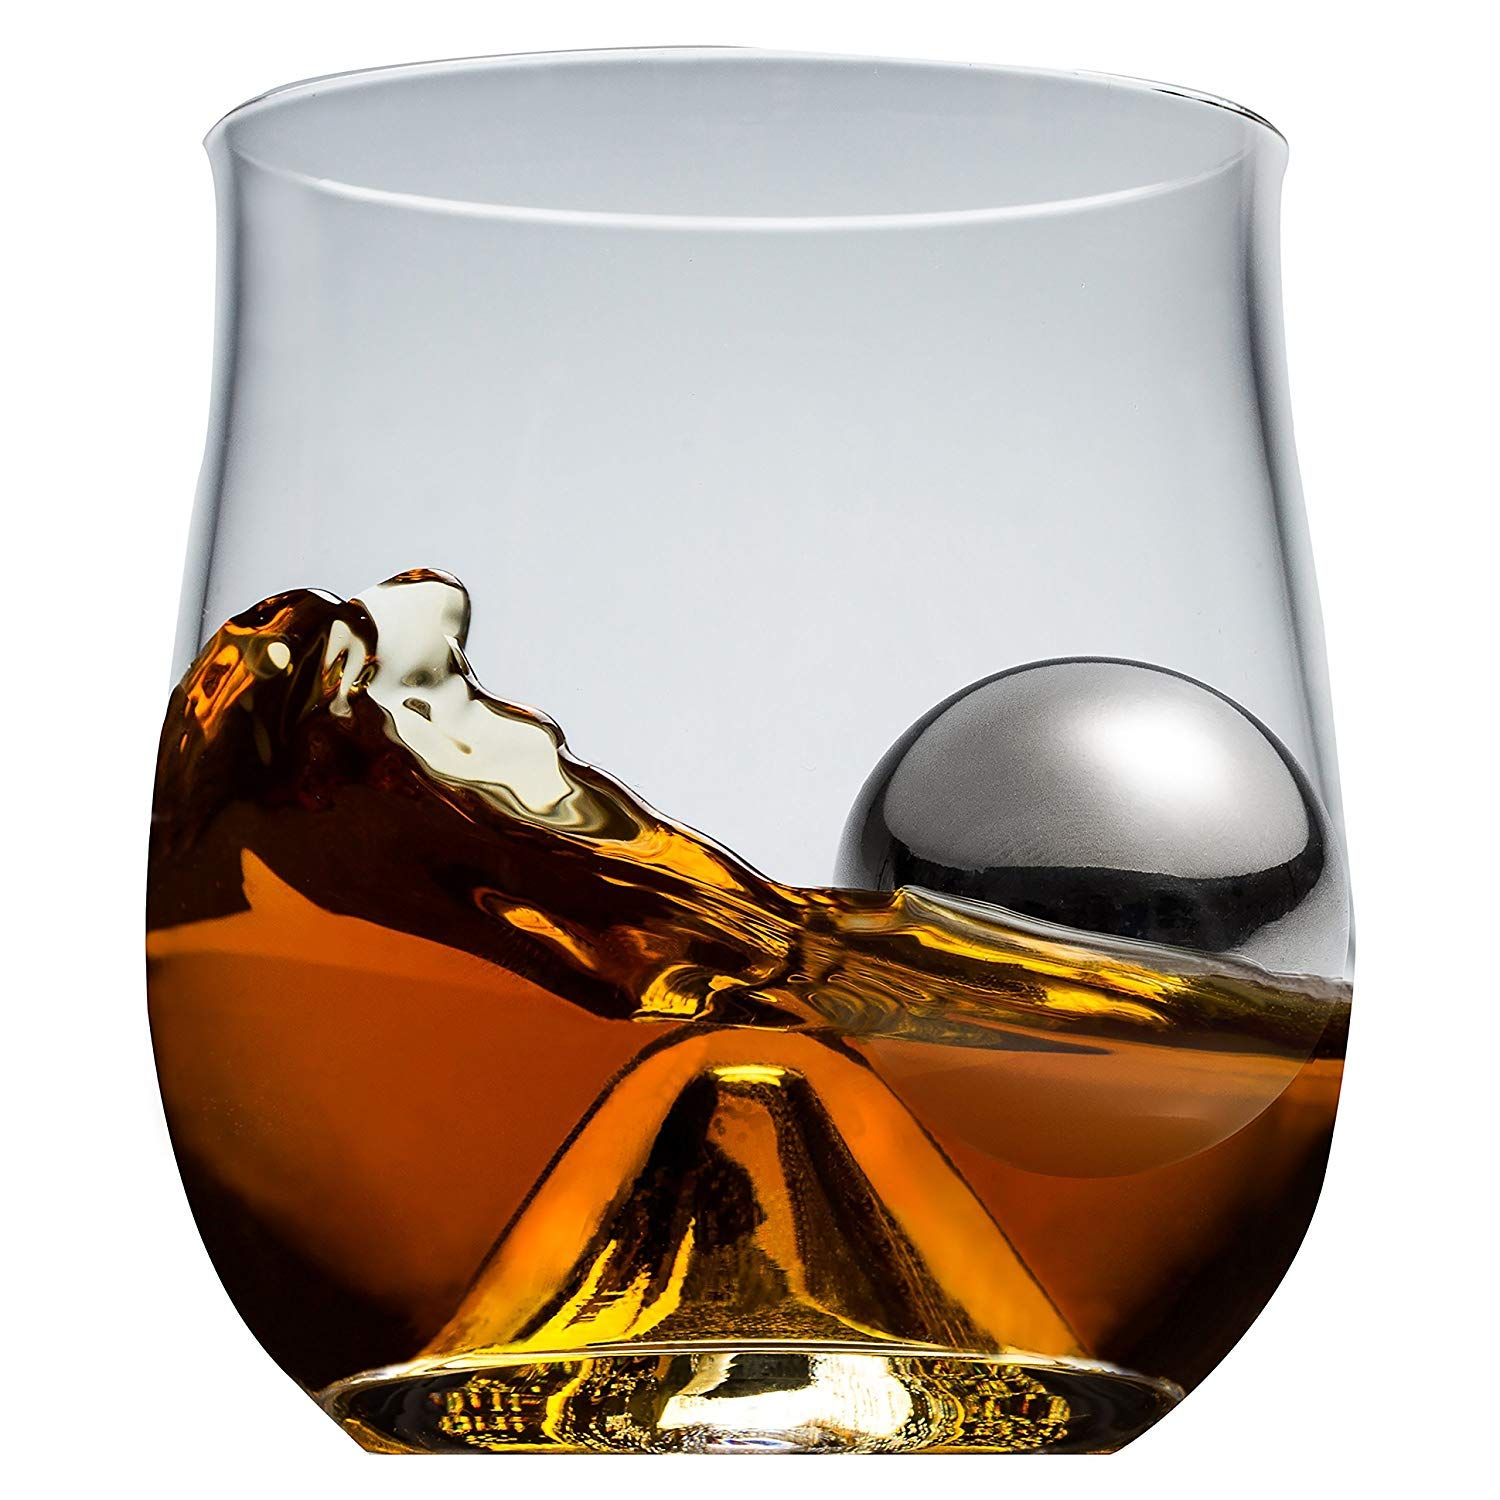 Rox and Roll 4 Piece Old Fashioned Glass Set (4 gift boxes)